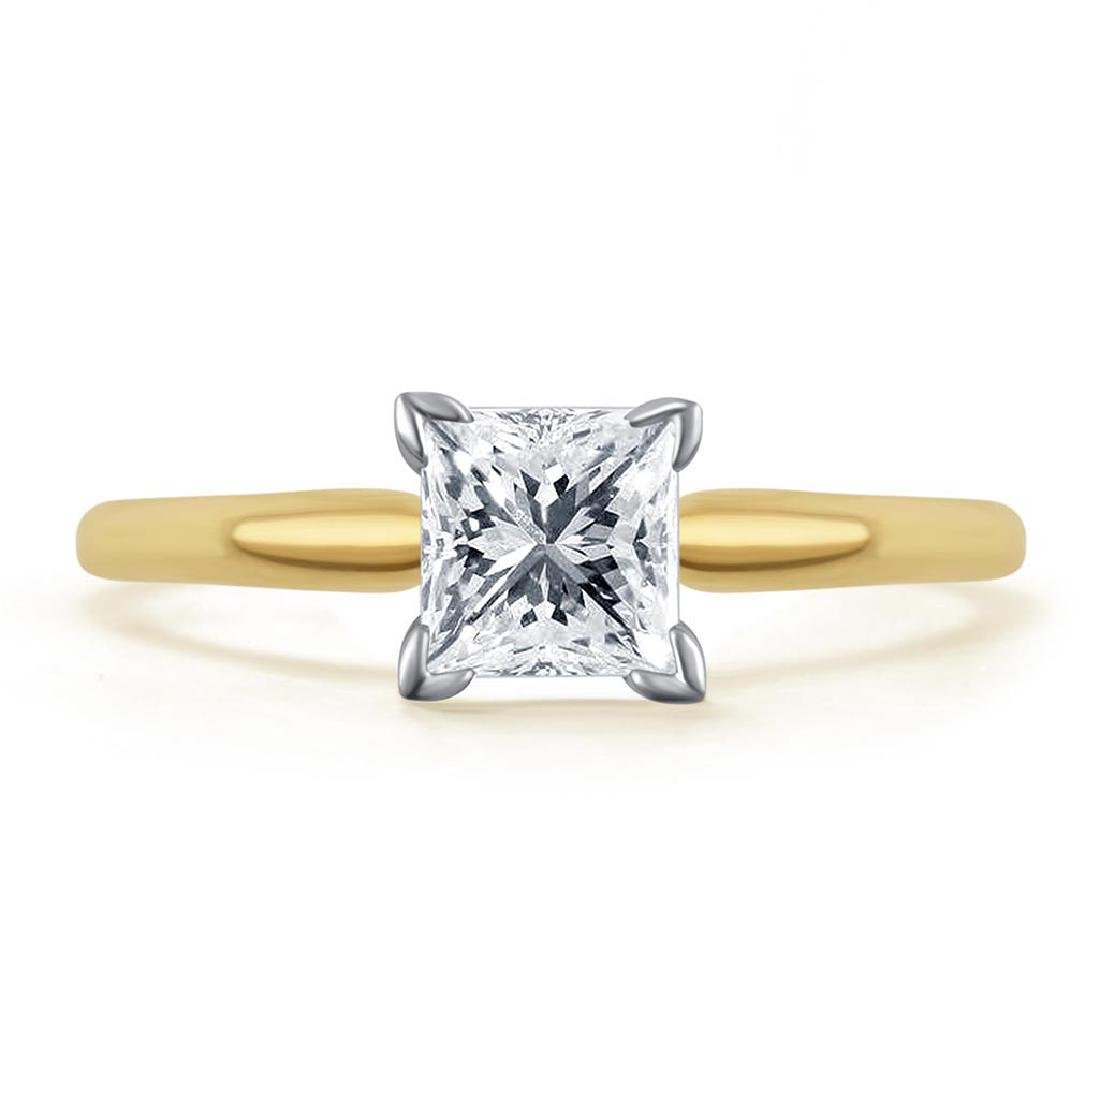 CERTIFIED 0.51 CTW PRINCESS D/VVS1 SOLITAIRE RING IN 14